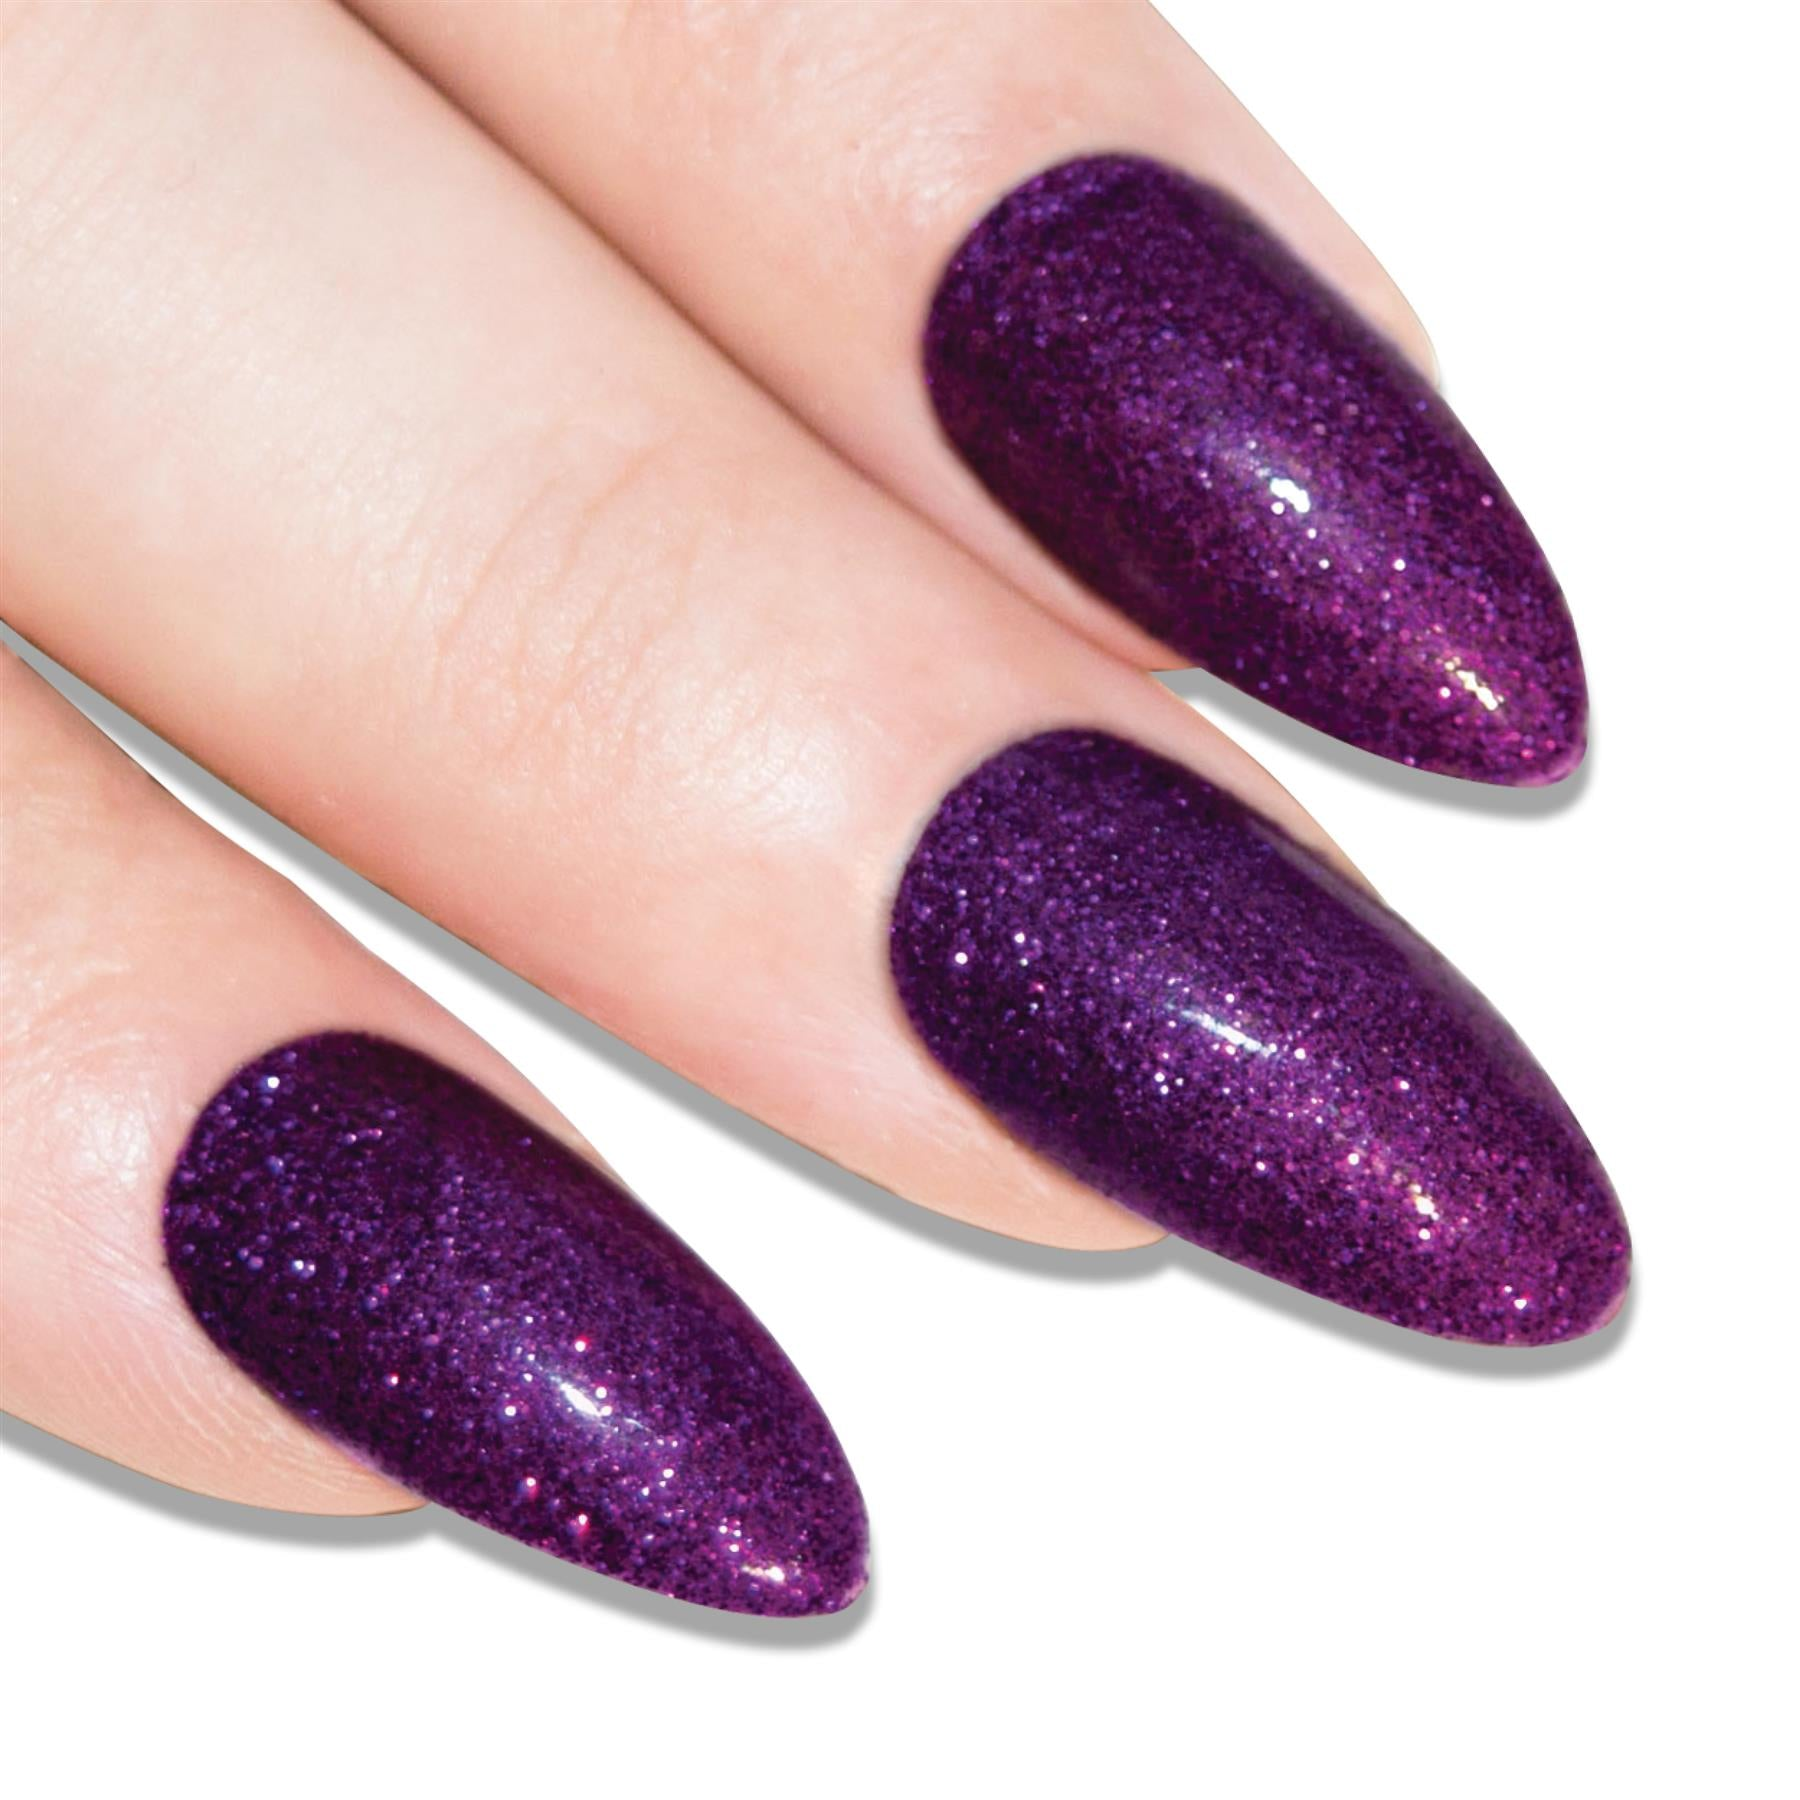 False Nails Bling Art Purple Gel Almond Stiletto Long Fake Acrylic Tips and Glue, Cosmetics by Bling Art